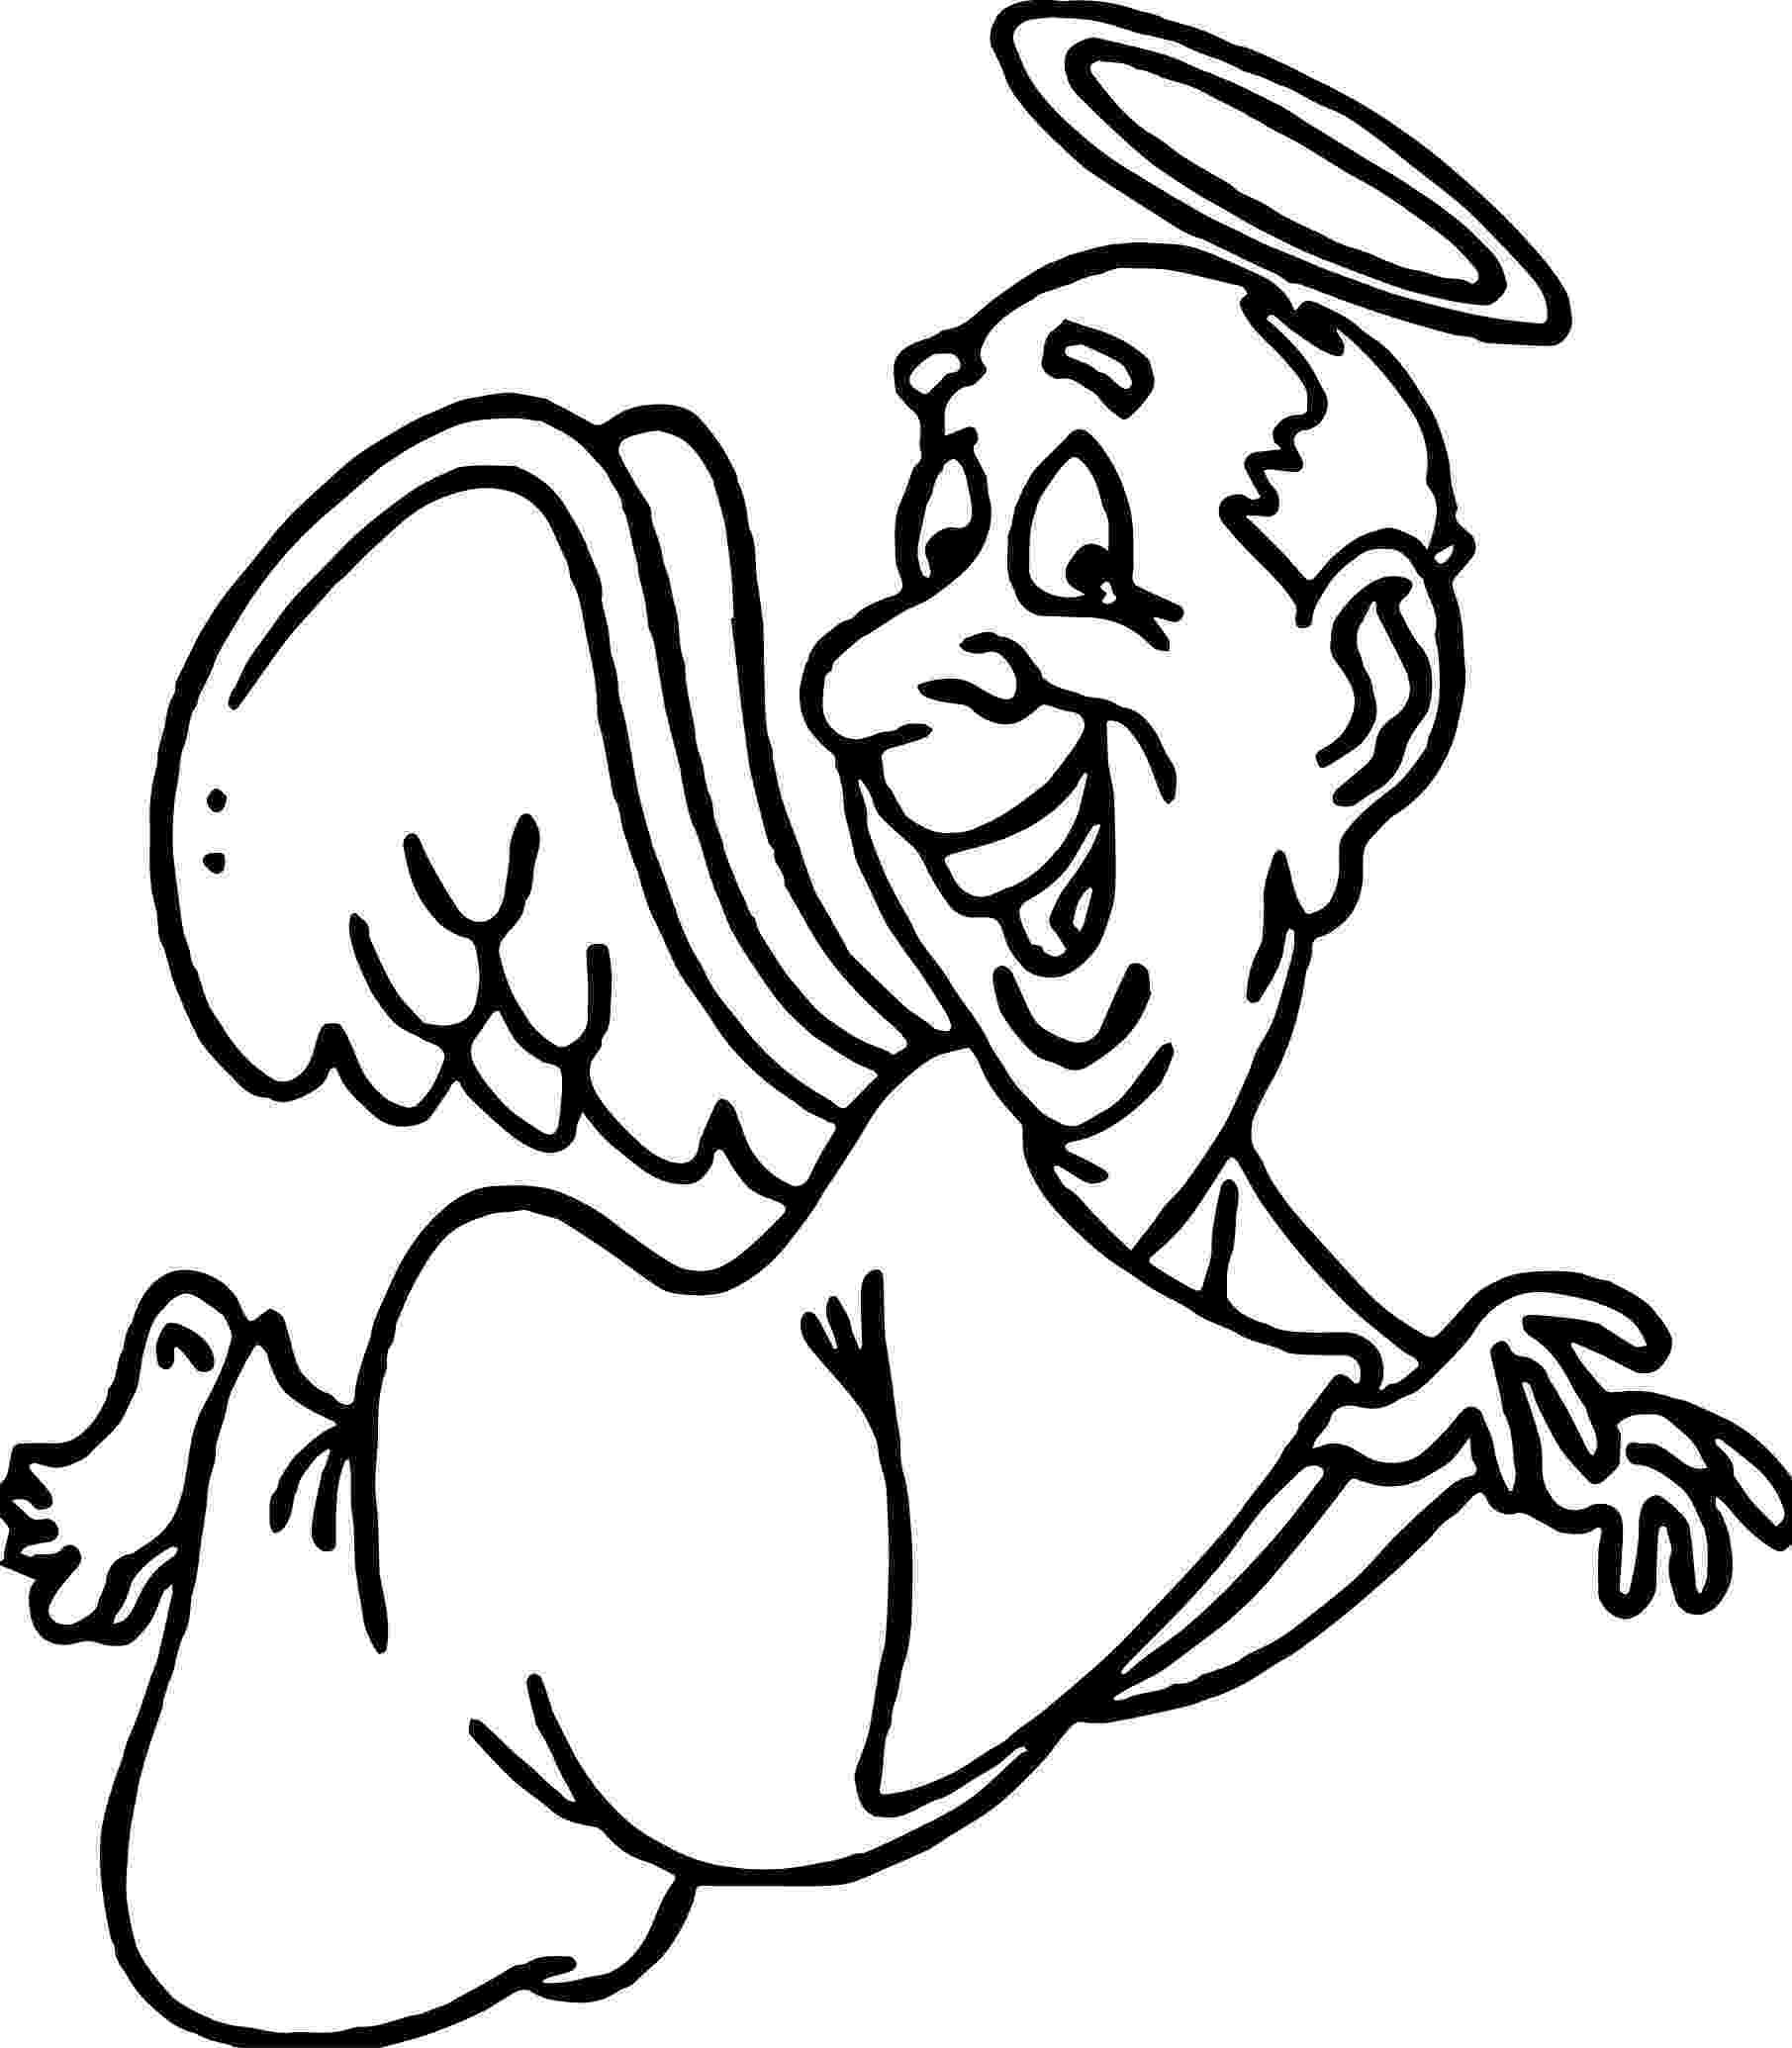 old man coloring pages pointing man coloring page old coloring pages man